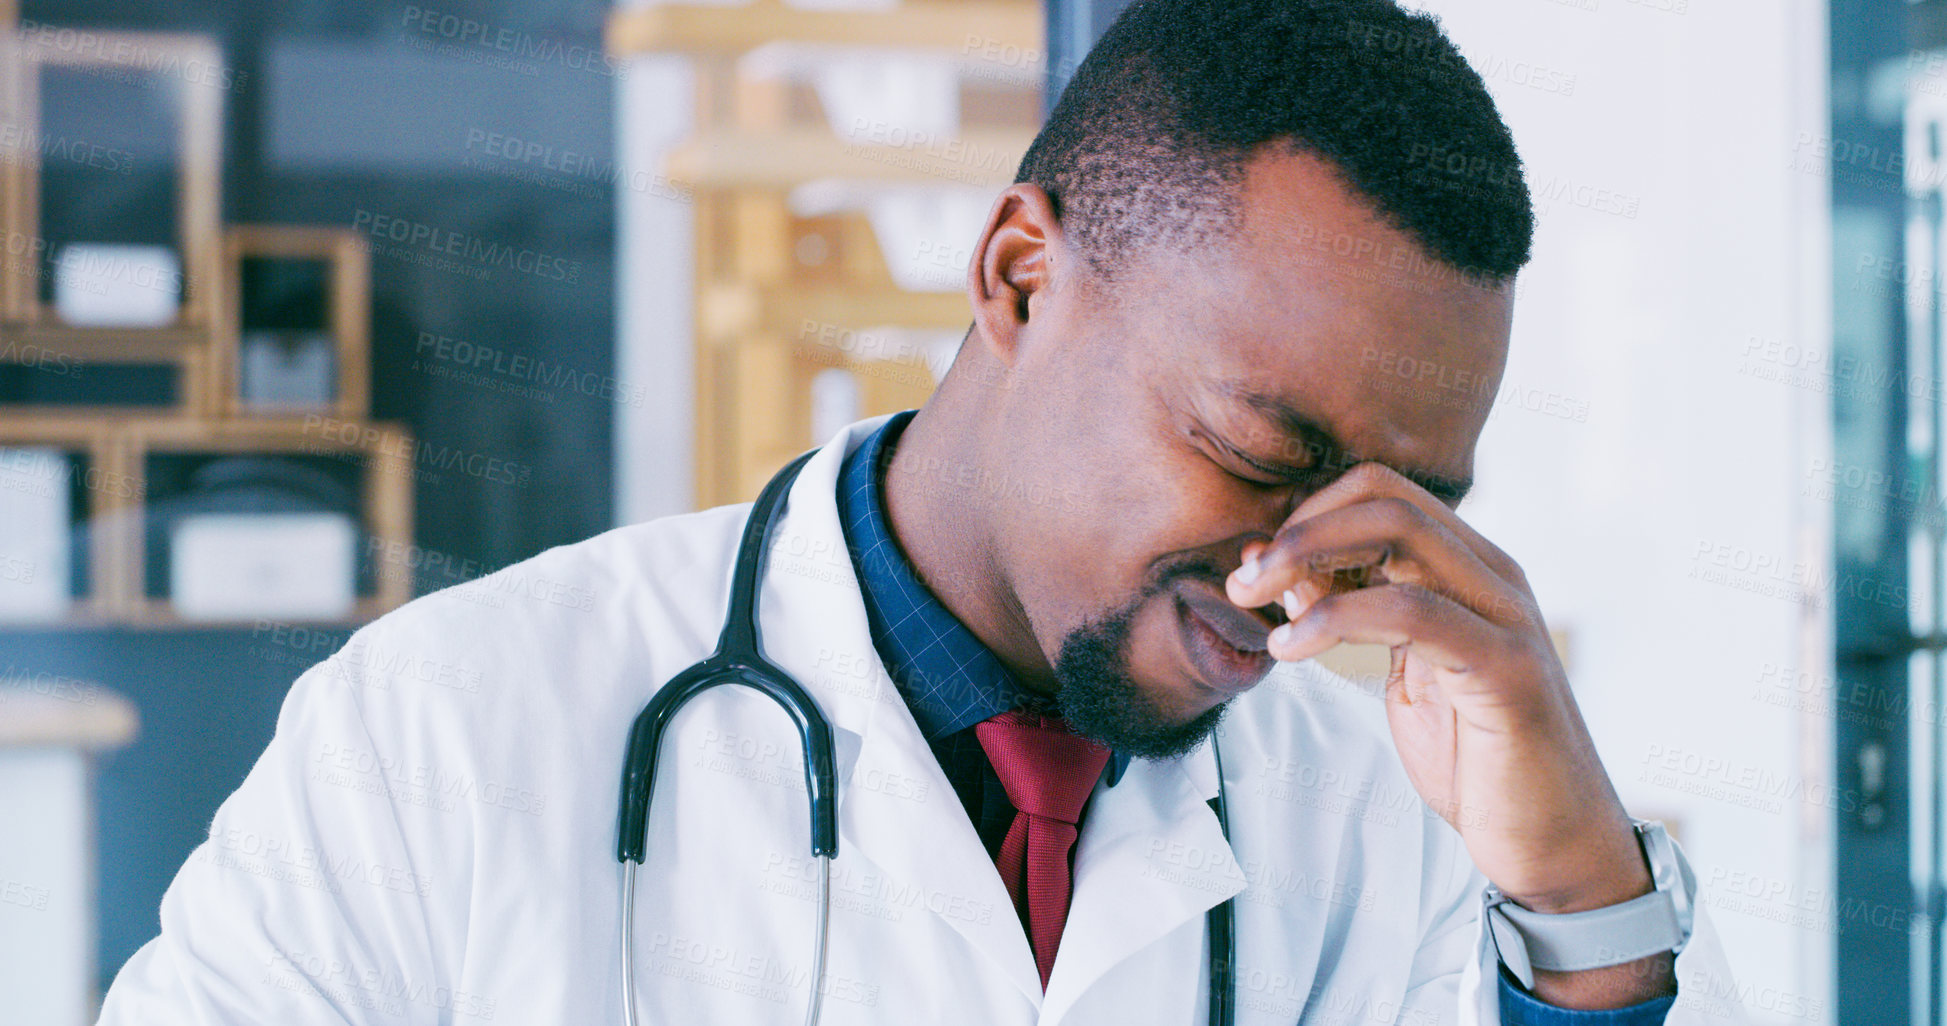 Buy stock photo Shot of a young doctor looking stressed out while working in a modern hospital